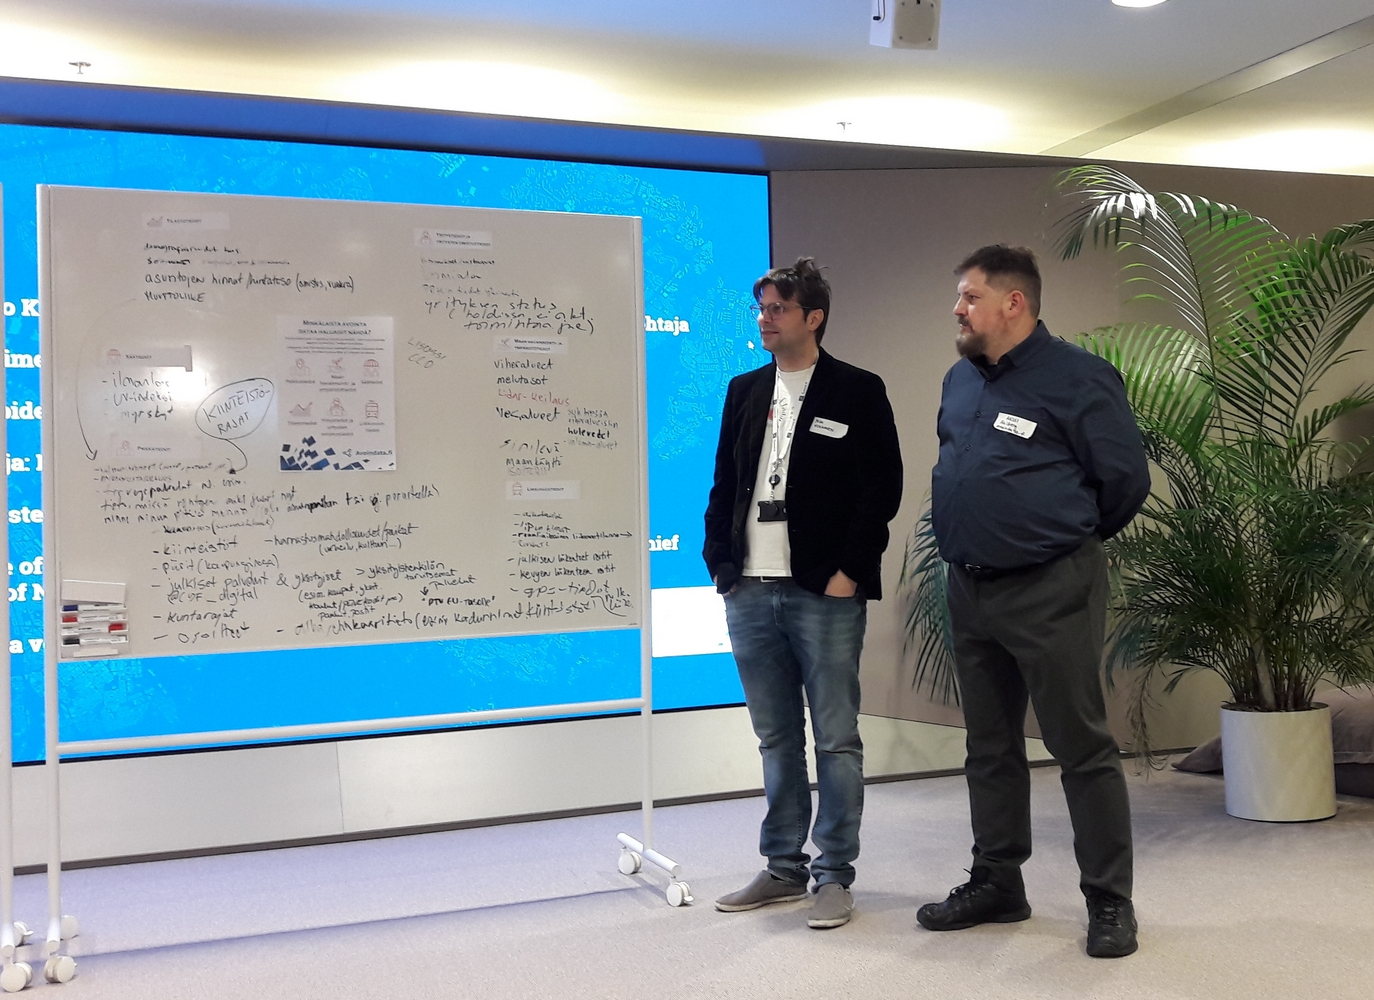 Avoindata.fi's service owner Mika Honkanen and product owner Anssi Ahlberg presented the dataset ideas to the crowd.